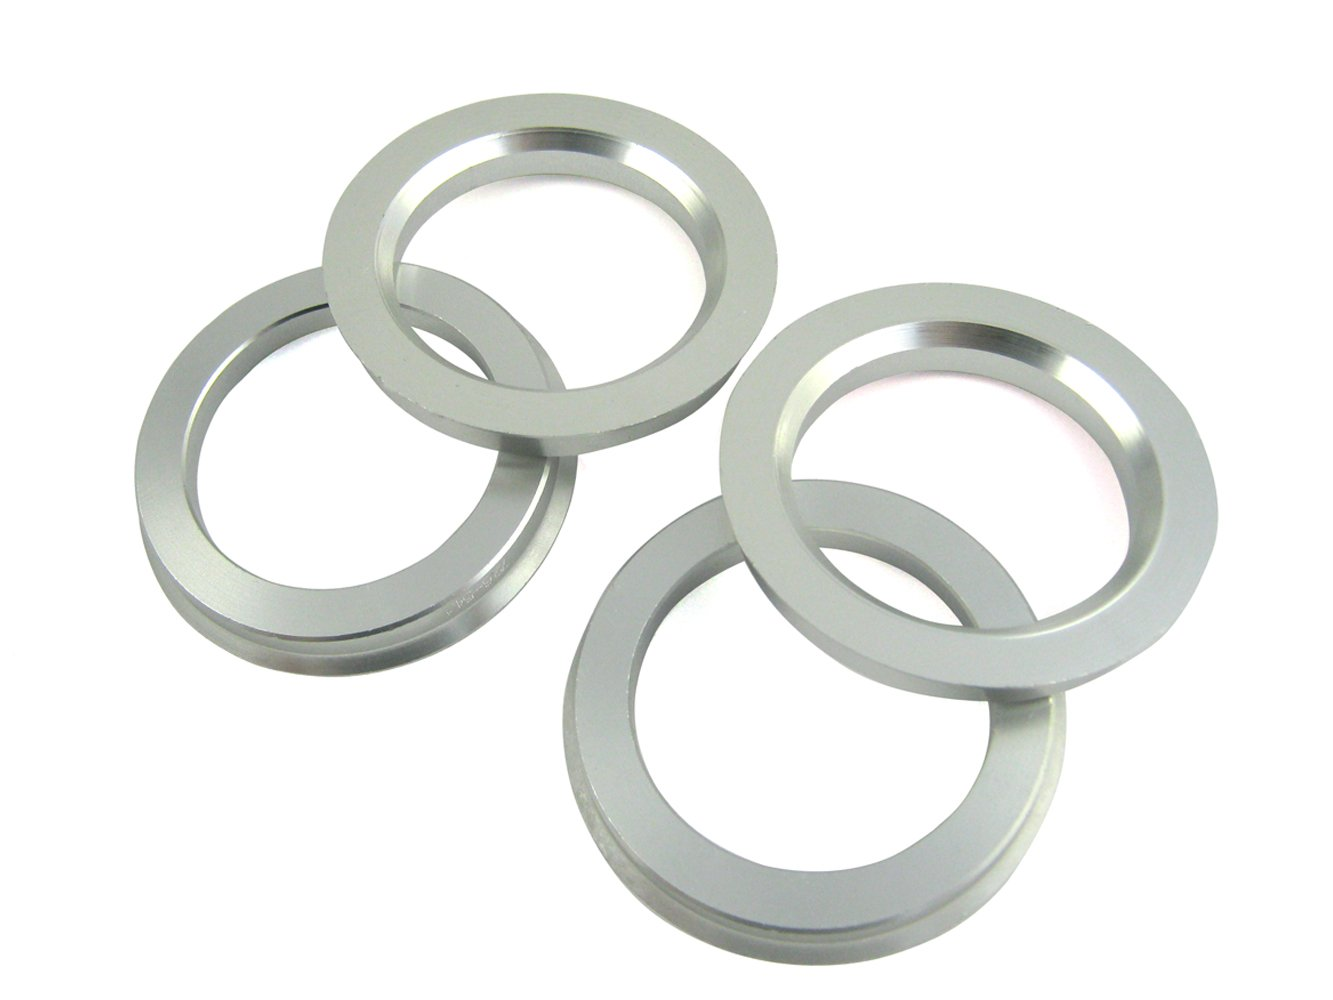 4 Pieces - Hub Centric Rings - 72.6mm OD to 54.1mm ID - Aluminum Hubrings SunHome